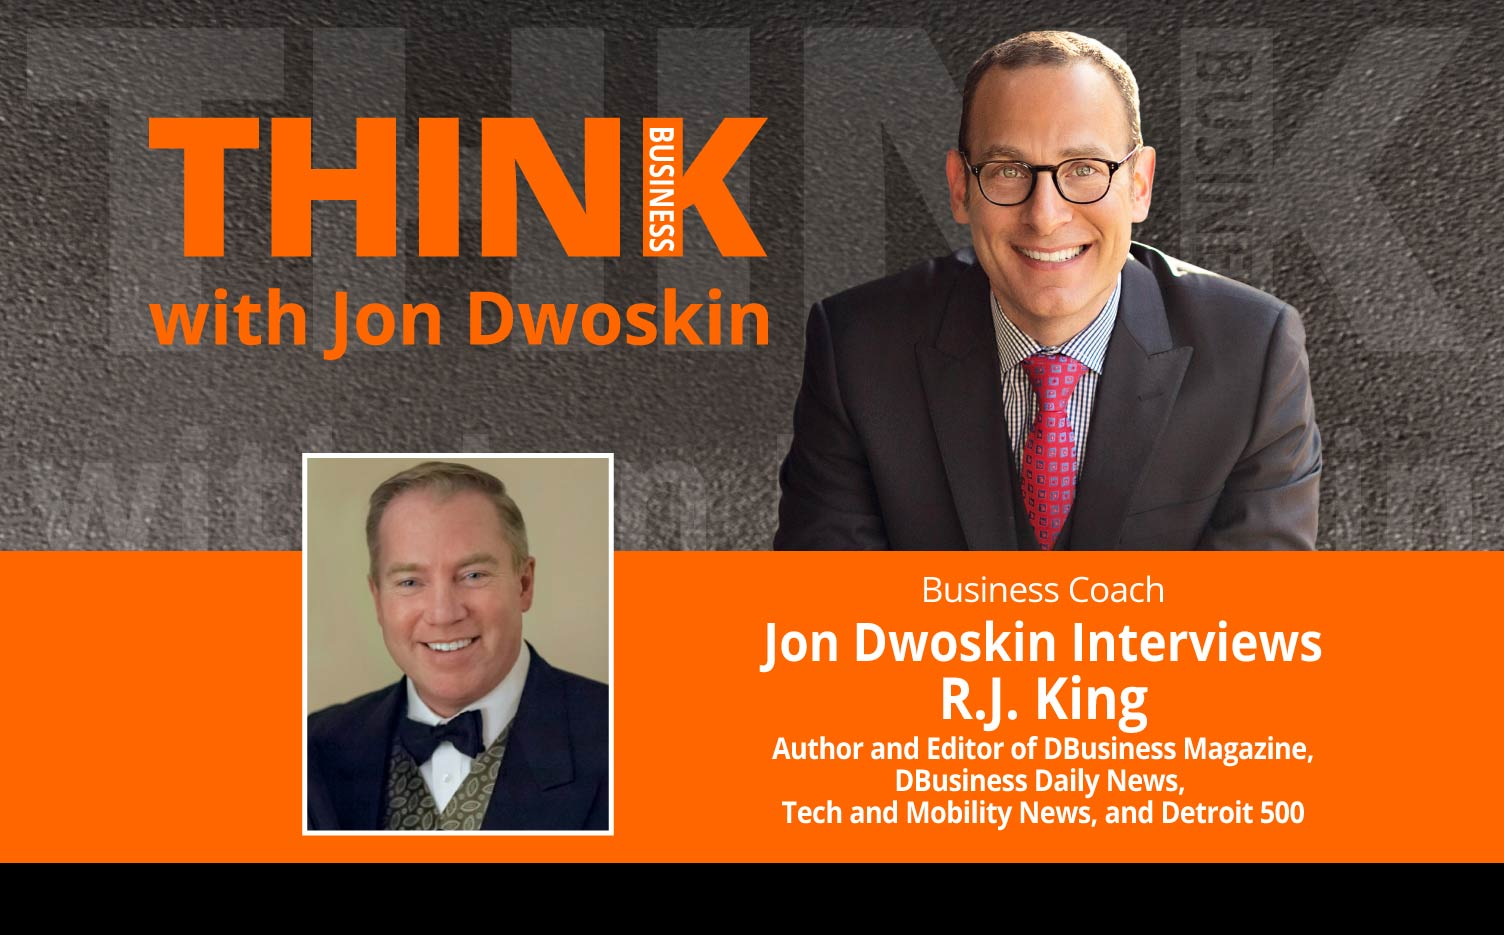 THINK Business Podcast: Jon Dwoskin Interviews R.J. King, Author and Editor of DBusiness Magazine, DBusiness Daily News, Tech and Mobility News, and Detroit 500